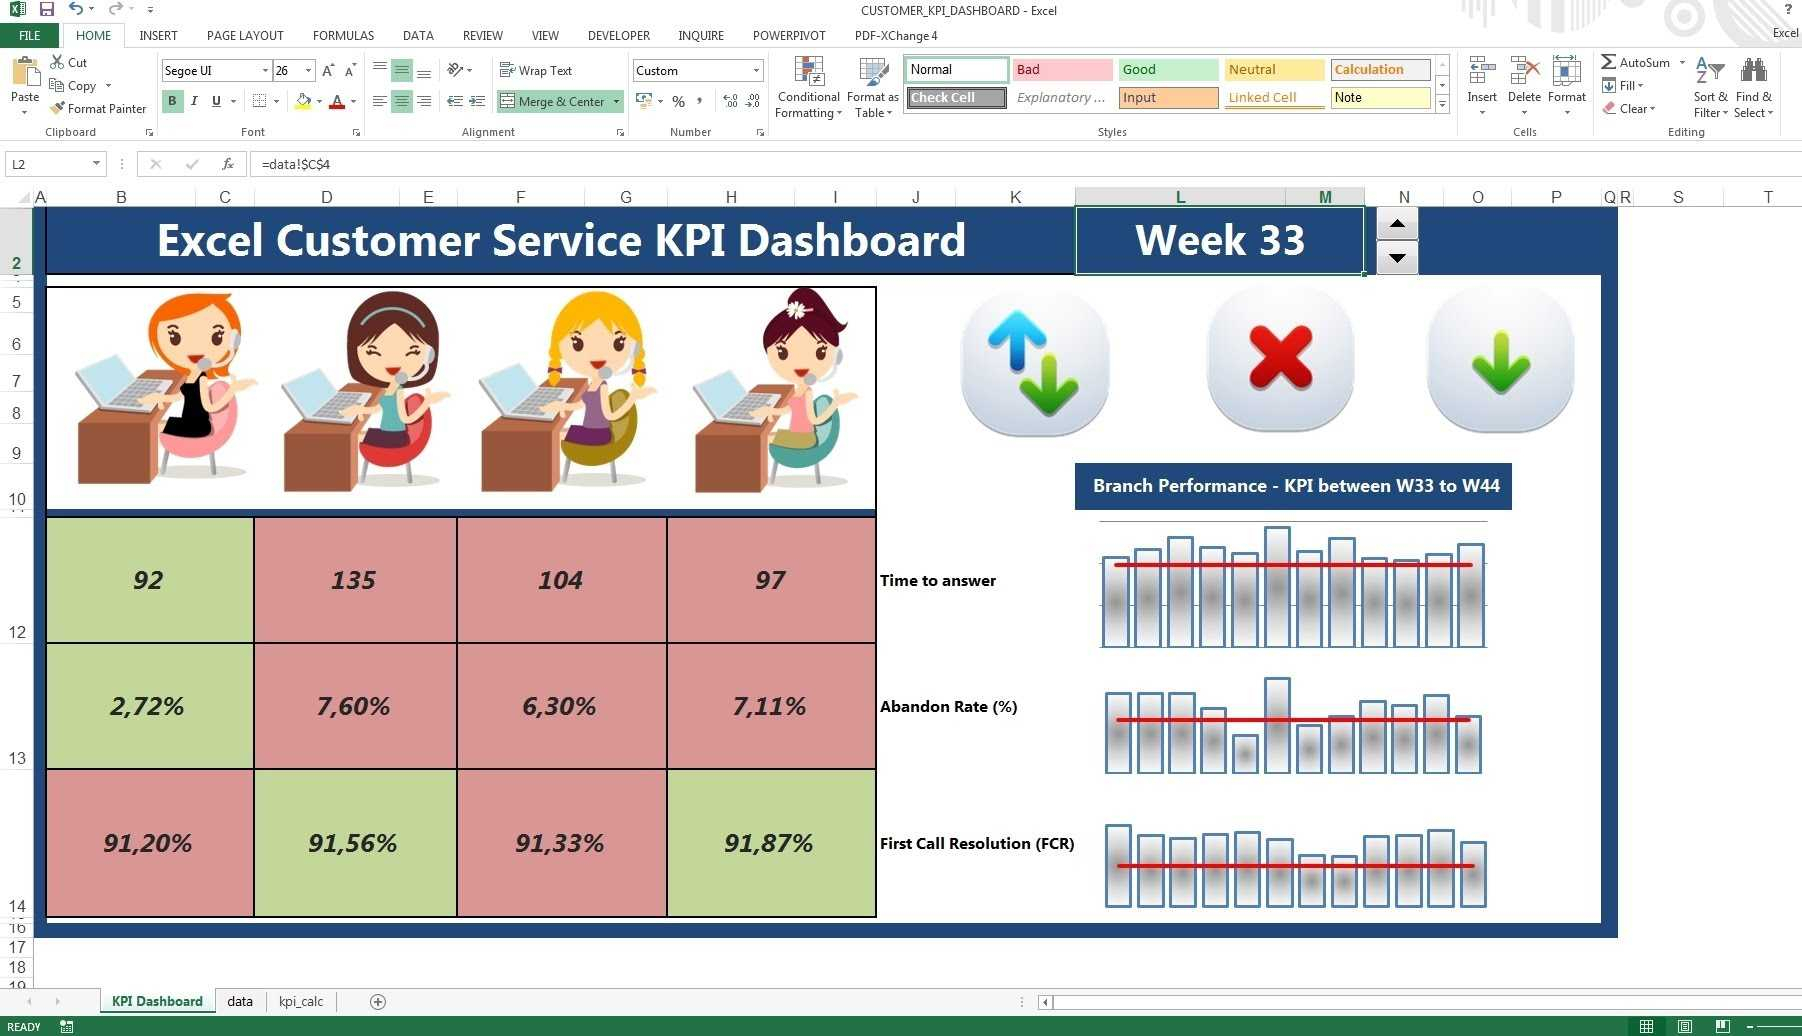 Kpi Dashboard Excel 2010 Sample Kpi Excel Spreadsheet – Sosfuer With Kpi Dashboard In Excel 2010